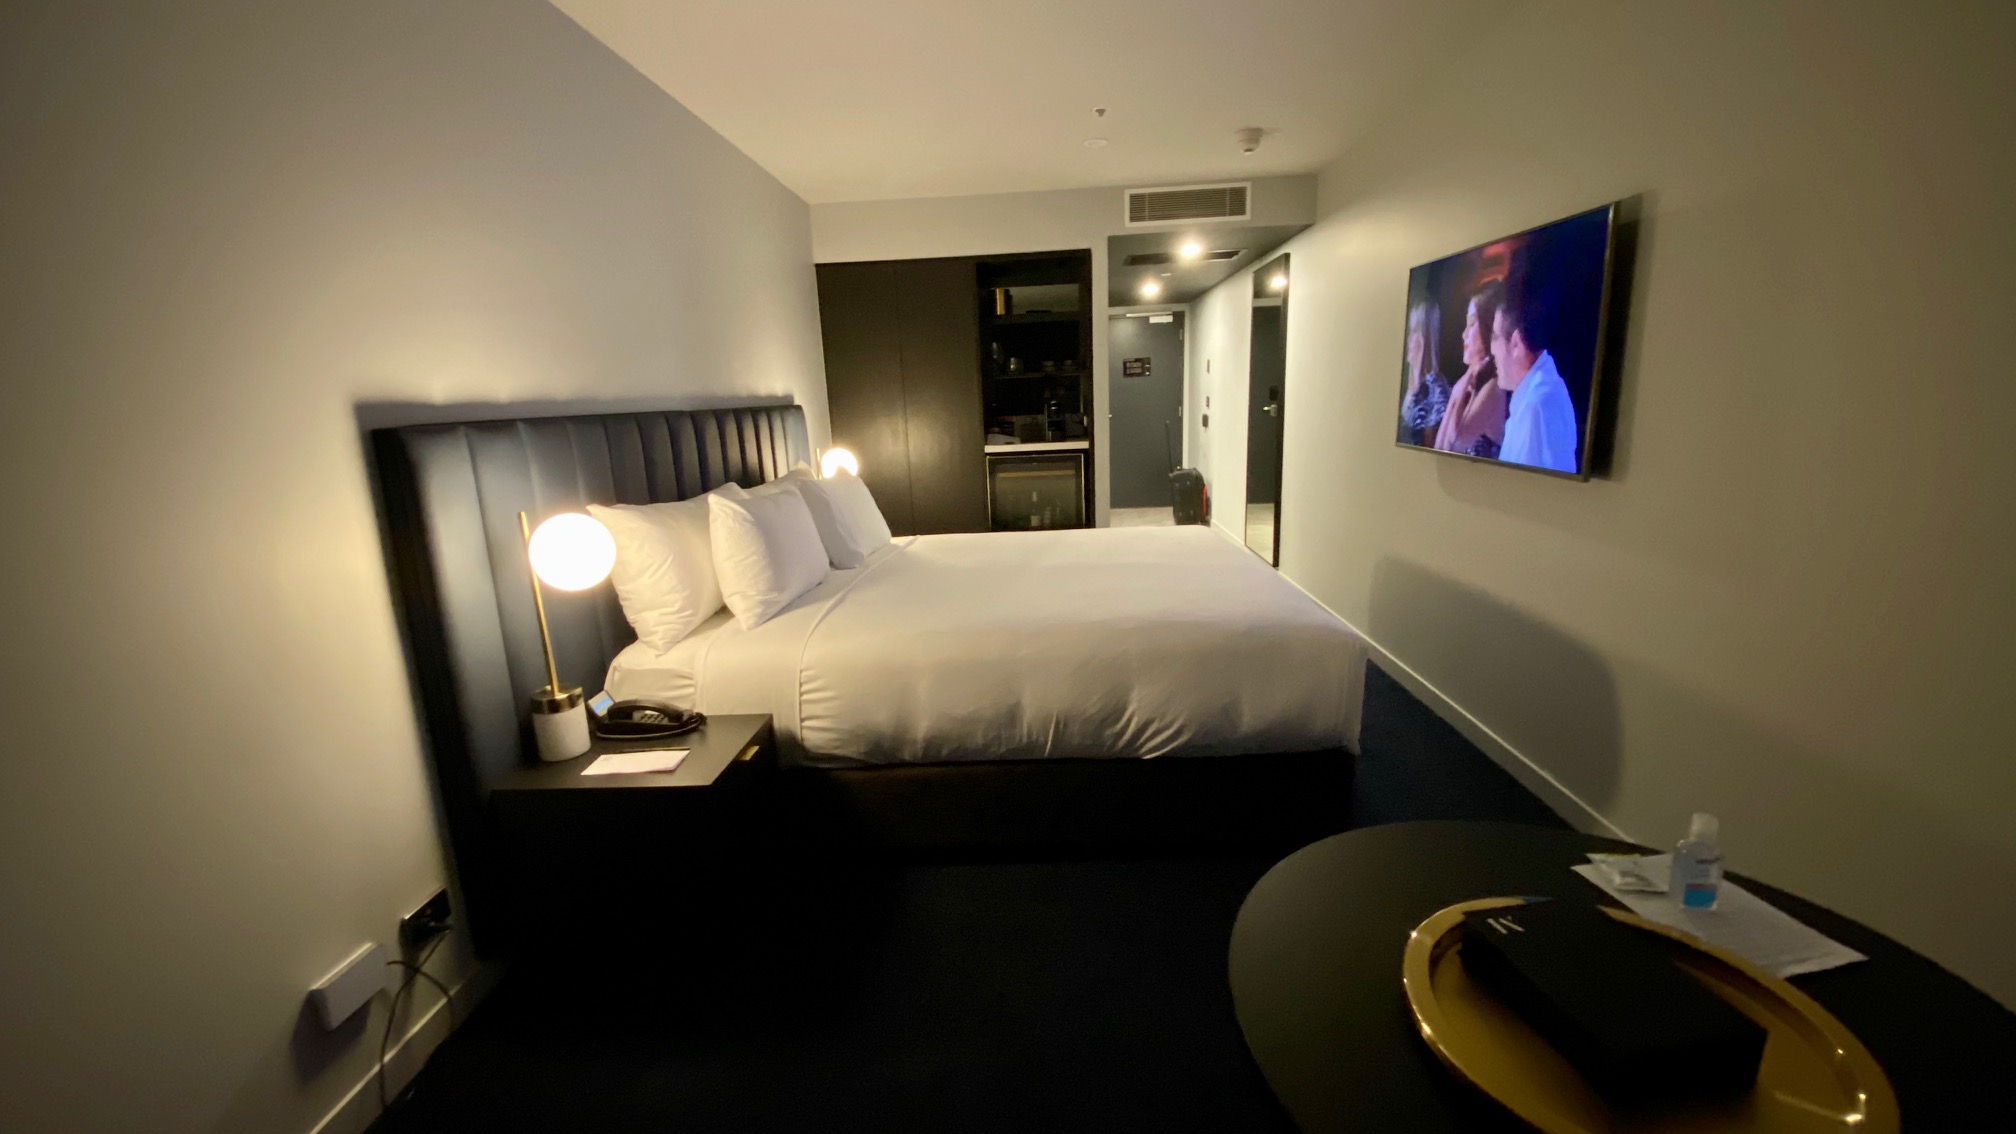 Kind Bed, Midnight Hotel Canberra